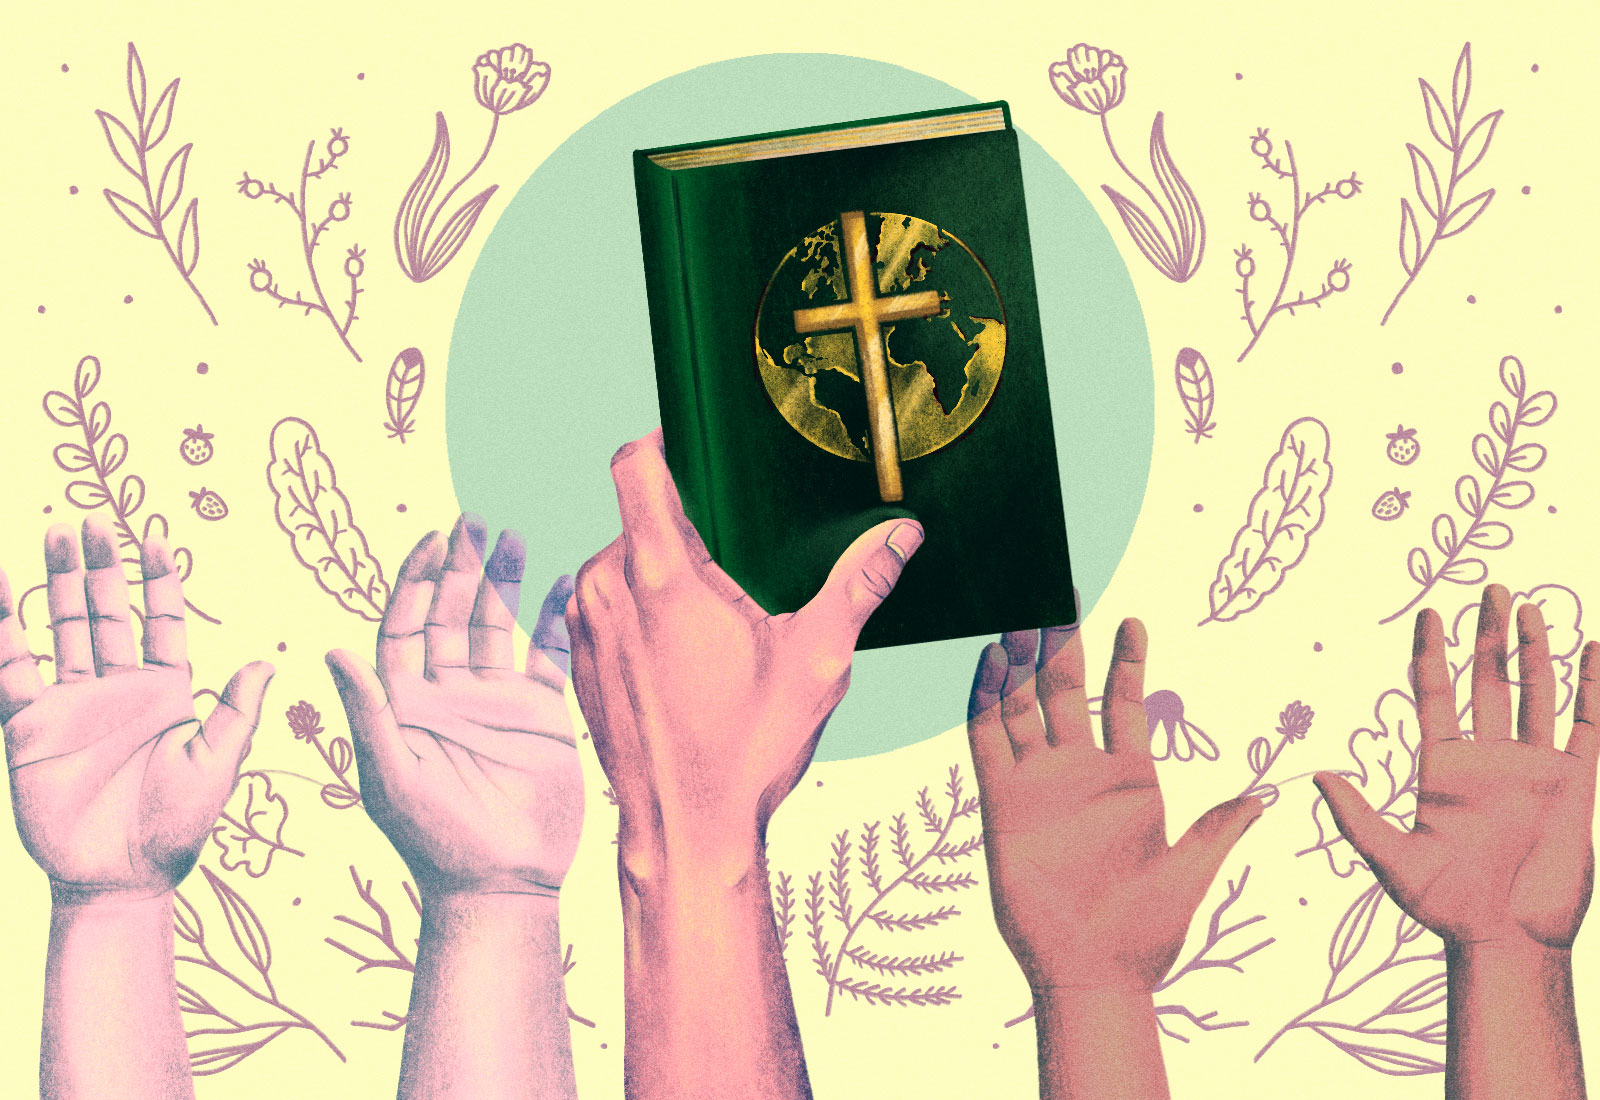 Illustration: Raised hands and a hand holding a bible with the Earth on it